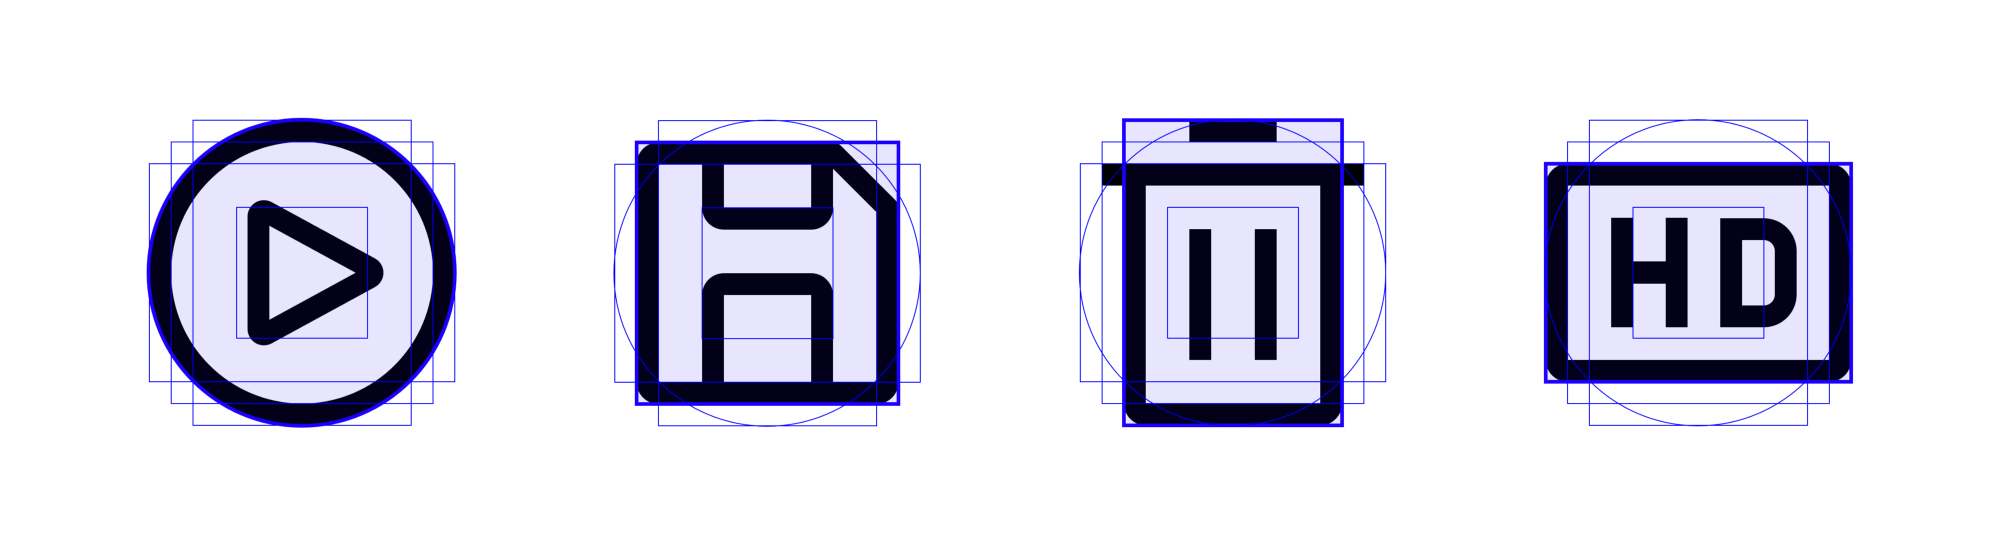 IBM icons for Play, Save, Delete, and HD reference keyshapes